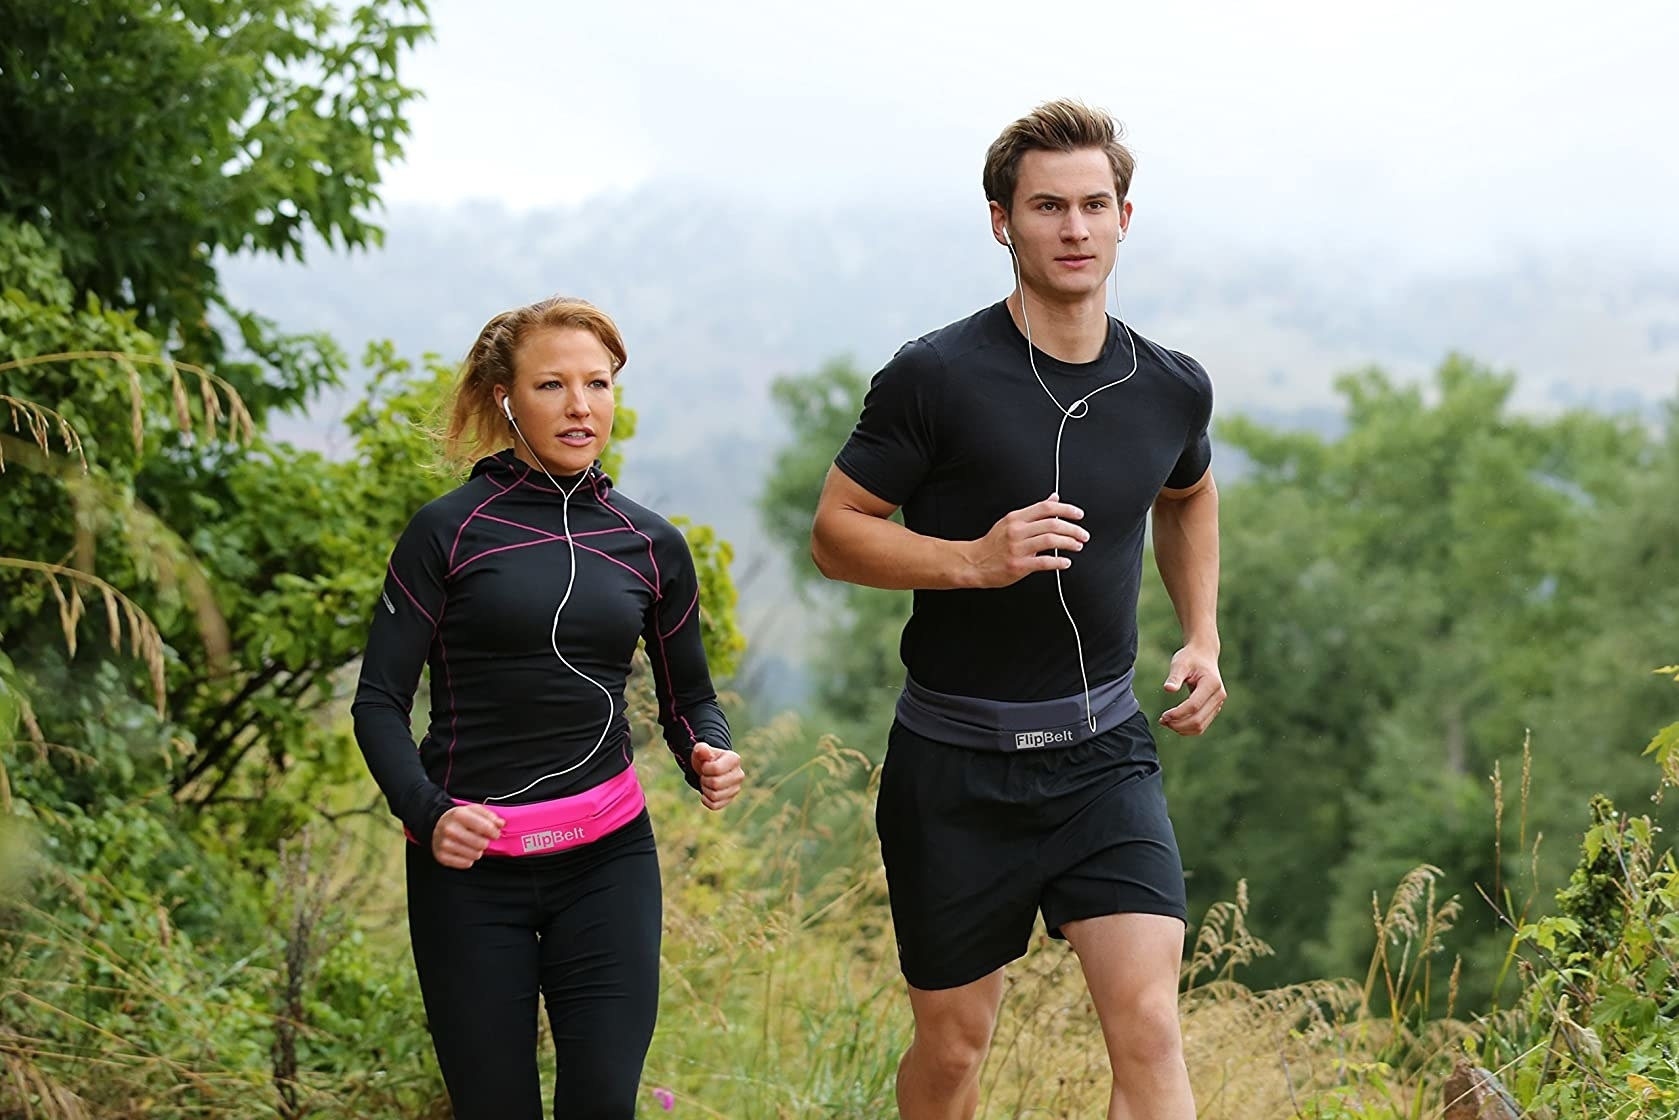 Two models wearing the waist bands to hold their phones while running